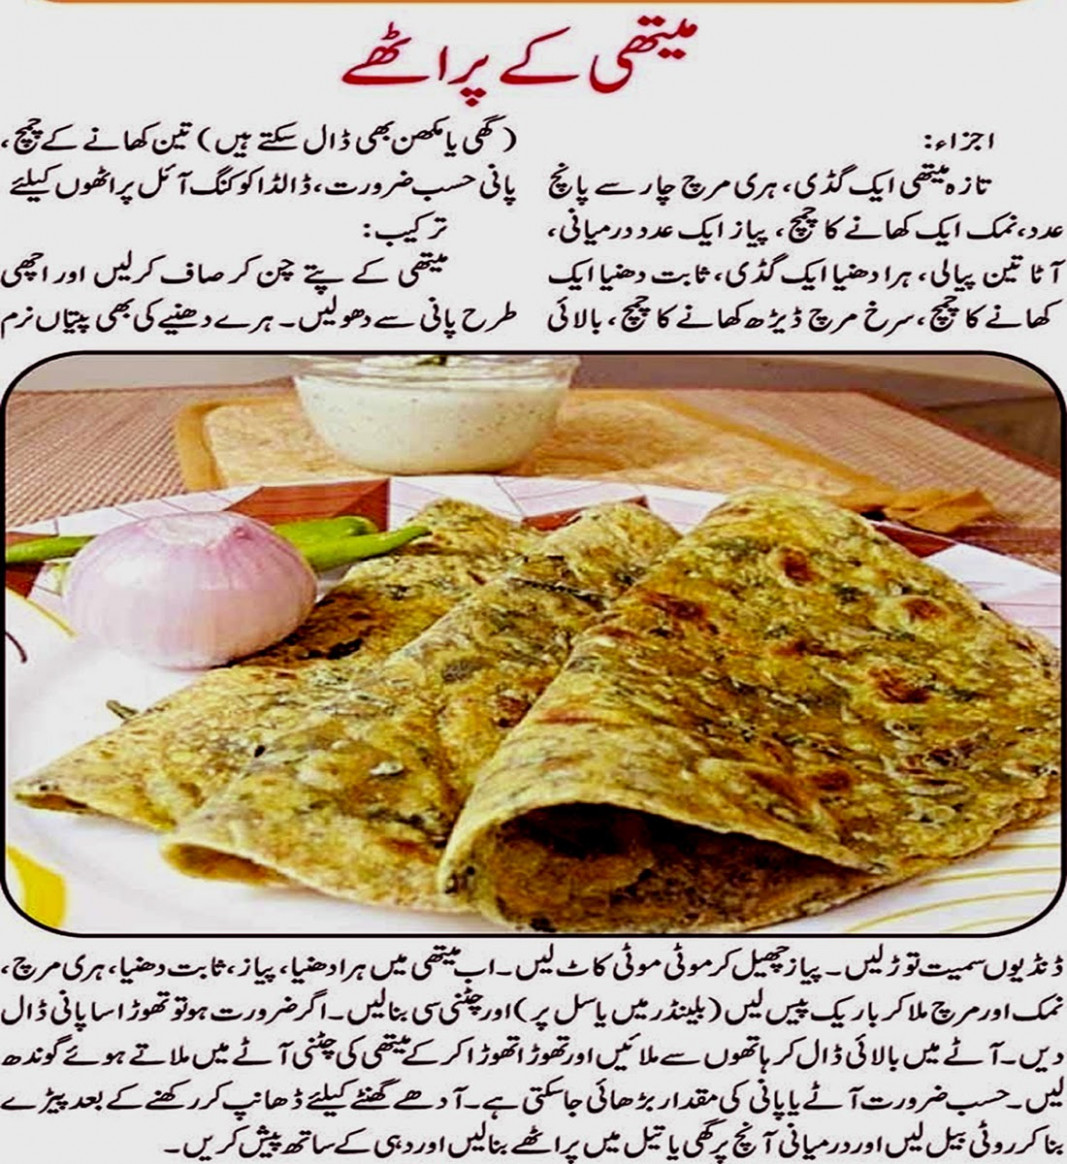 Urdu Recepies 4U: Food Recipe Of Methi Ka Pratha In Urdu